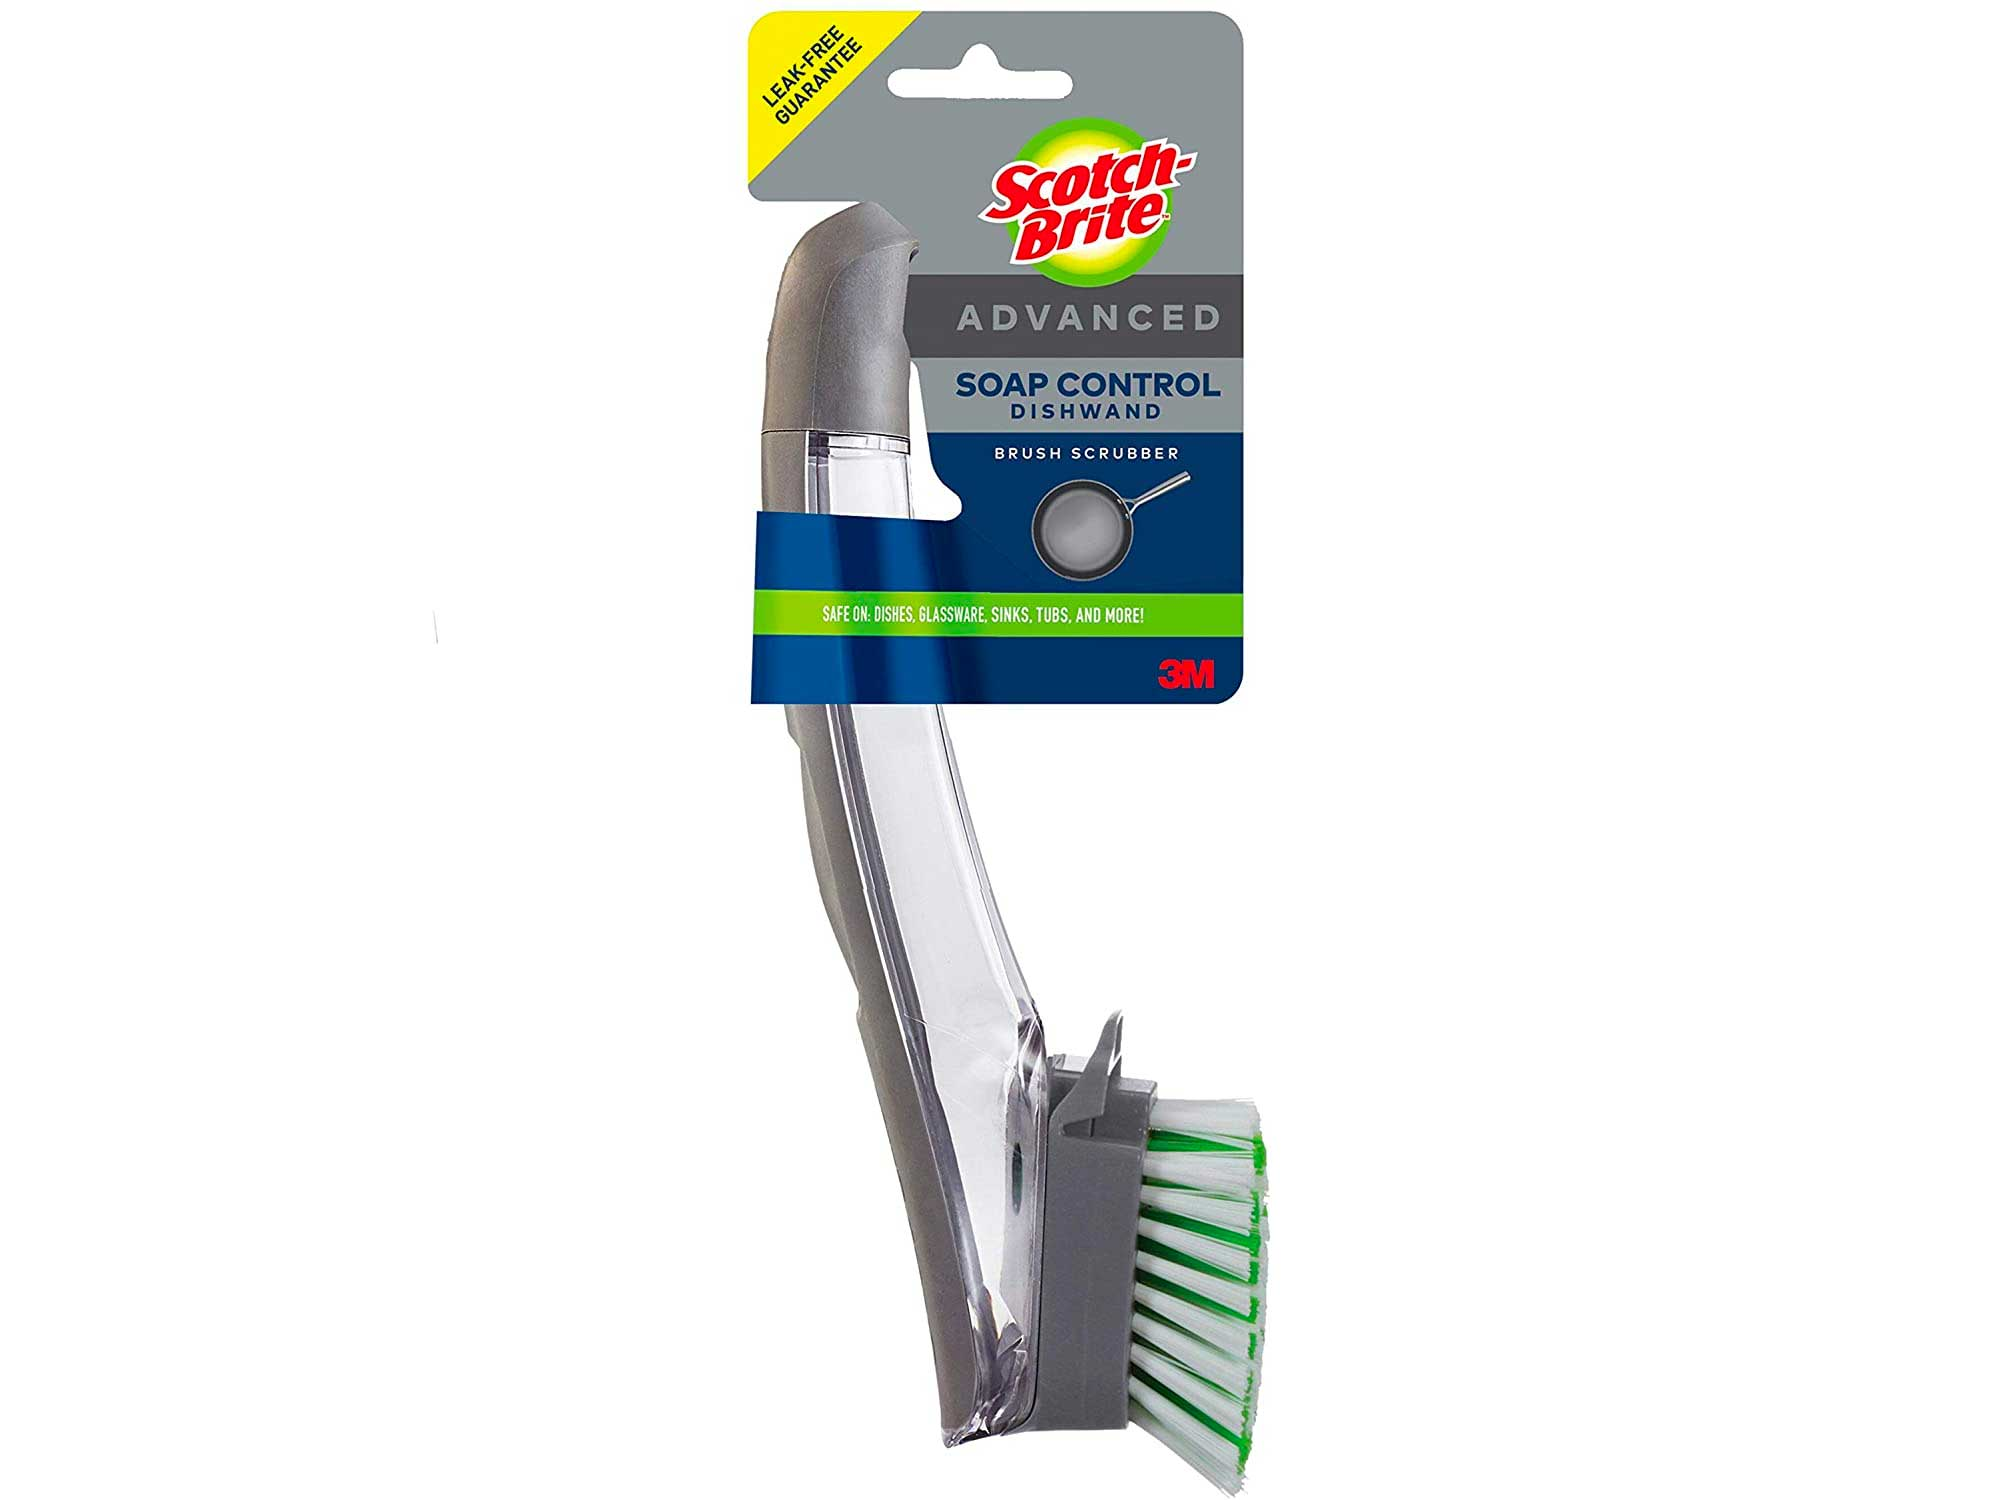 Scotch-Brite Advanced Soap Control Dishwand Brush, Leak-Free Guarantee, Keep Your Hands Out Of Dirty Water, Antimicrobial, Long Lasting and Reusable